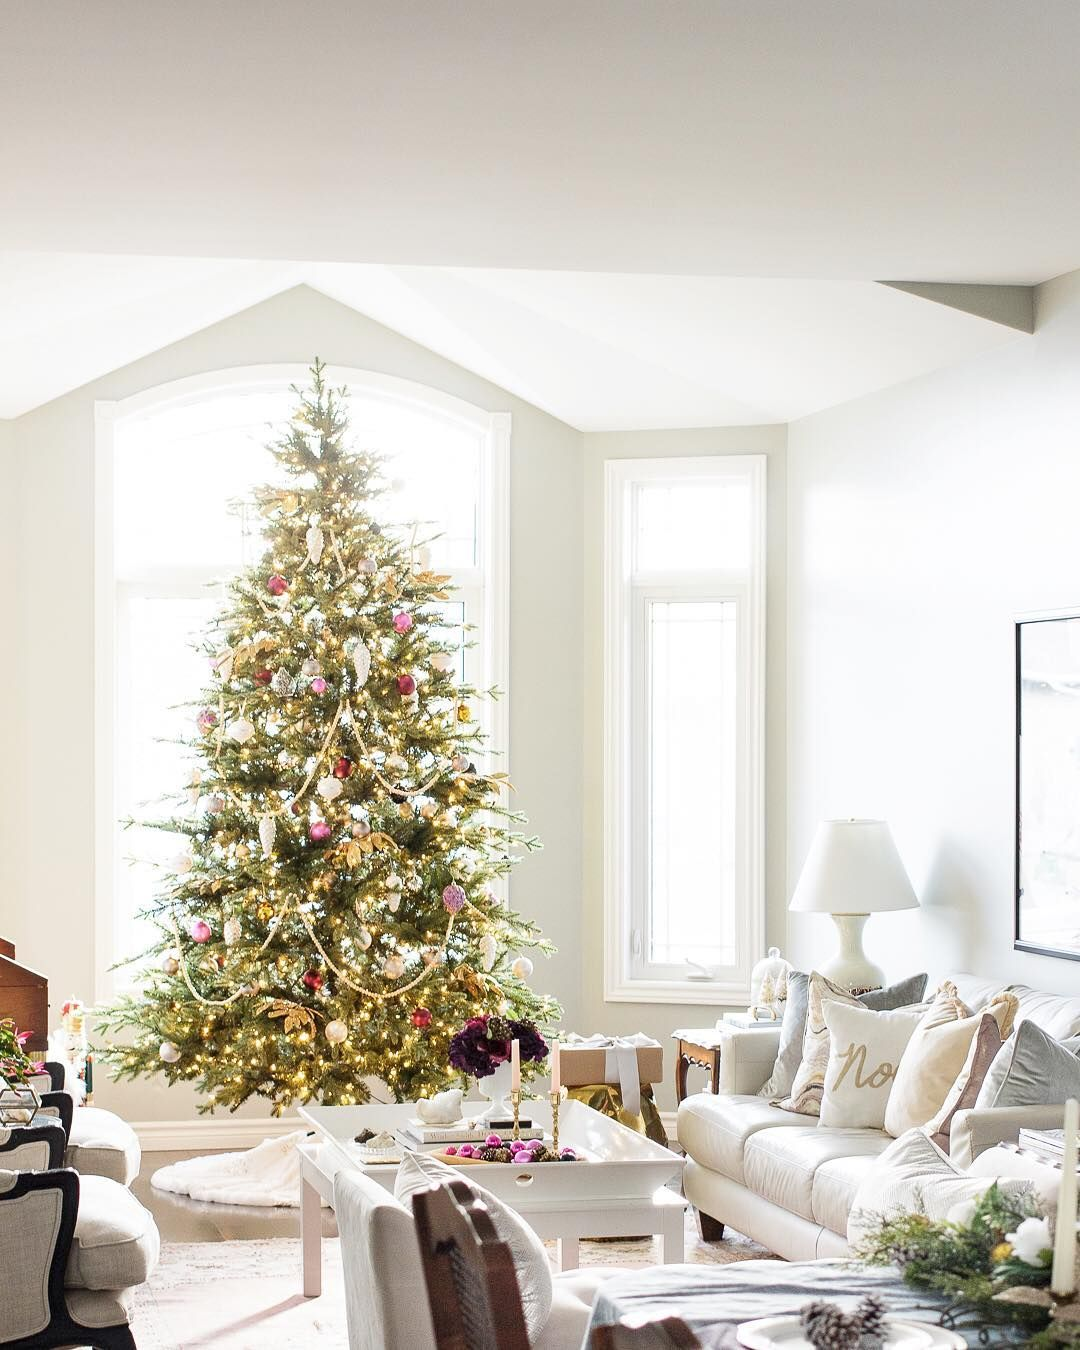 The Best Christmas Tree Decoration Ideas on Instagram | Pinterest ...